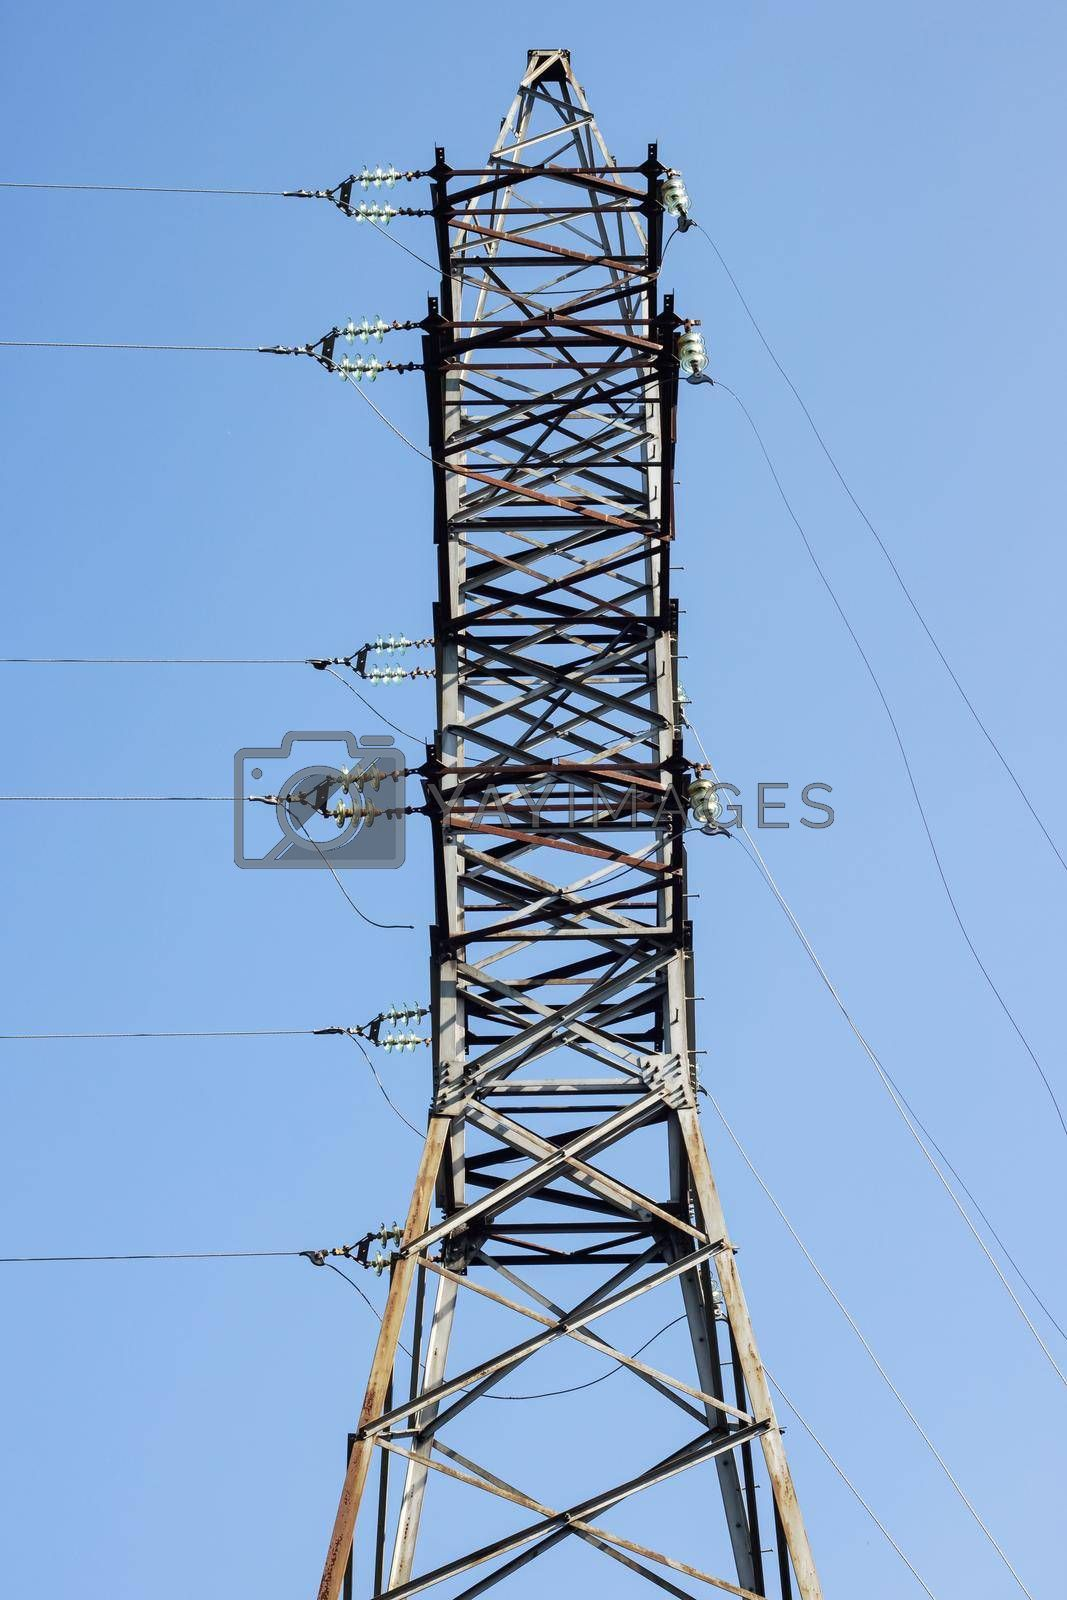 Metal pole with electrical networks on a blue sky background close up